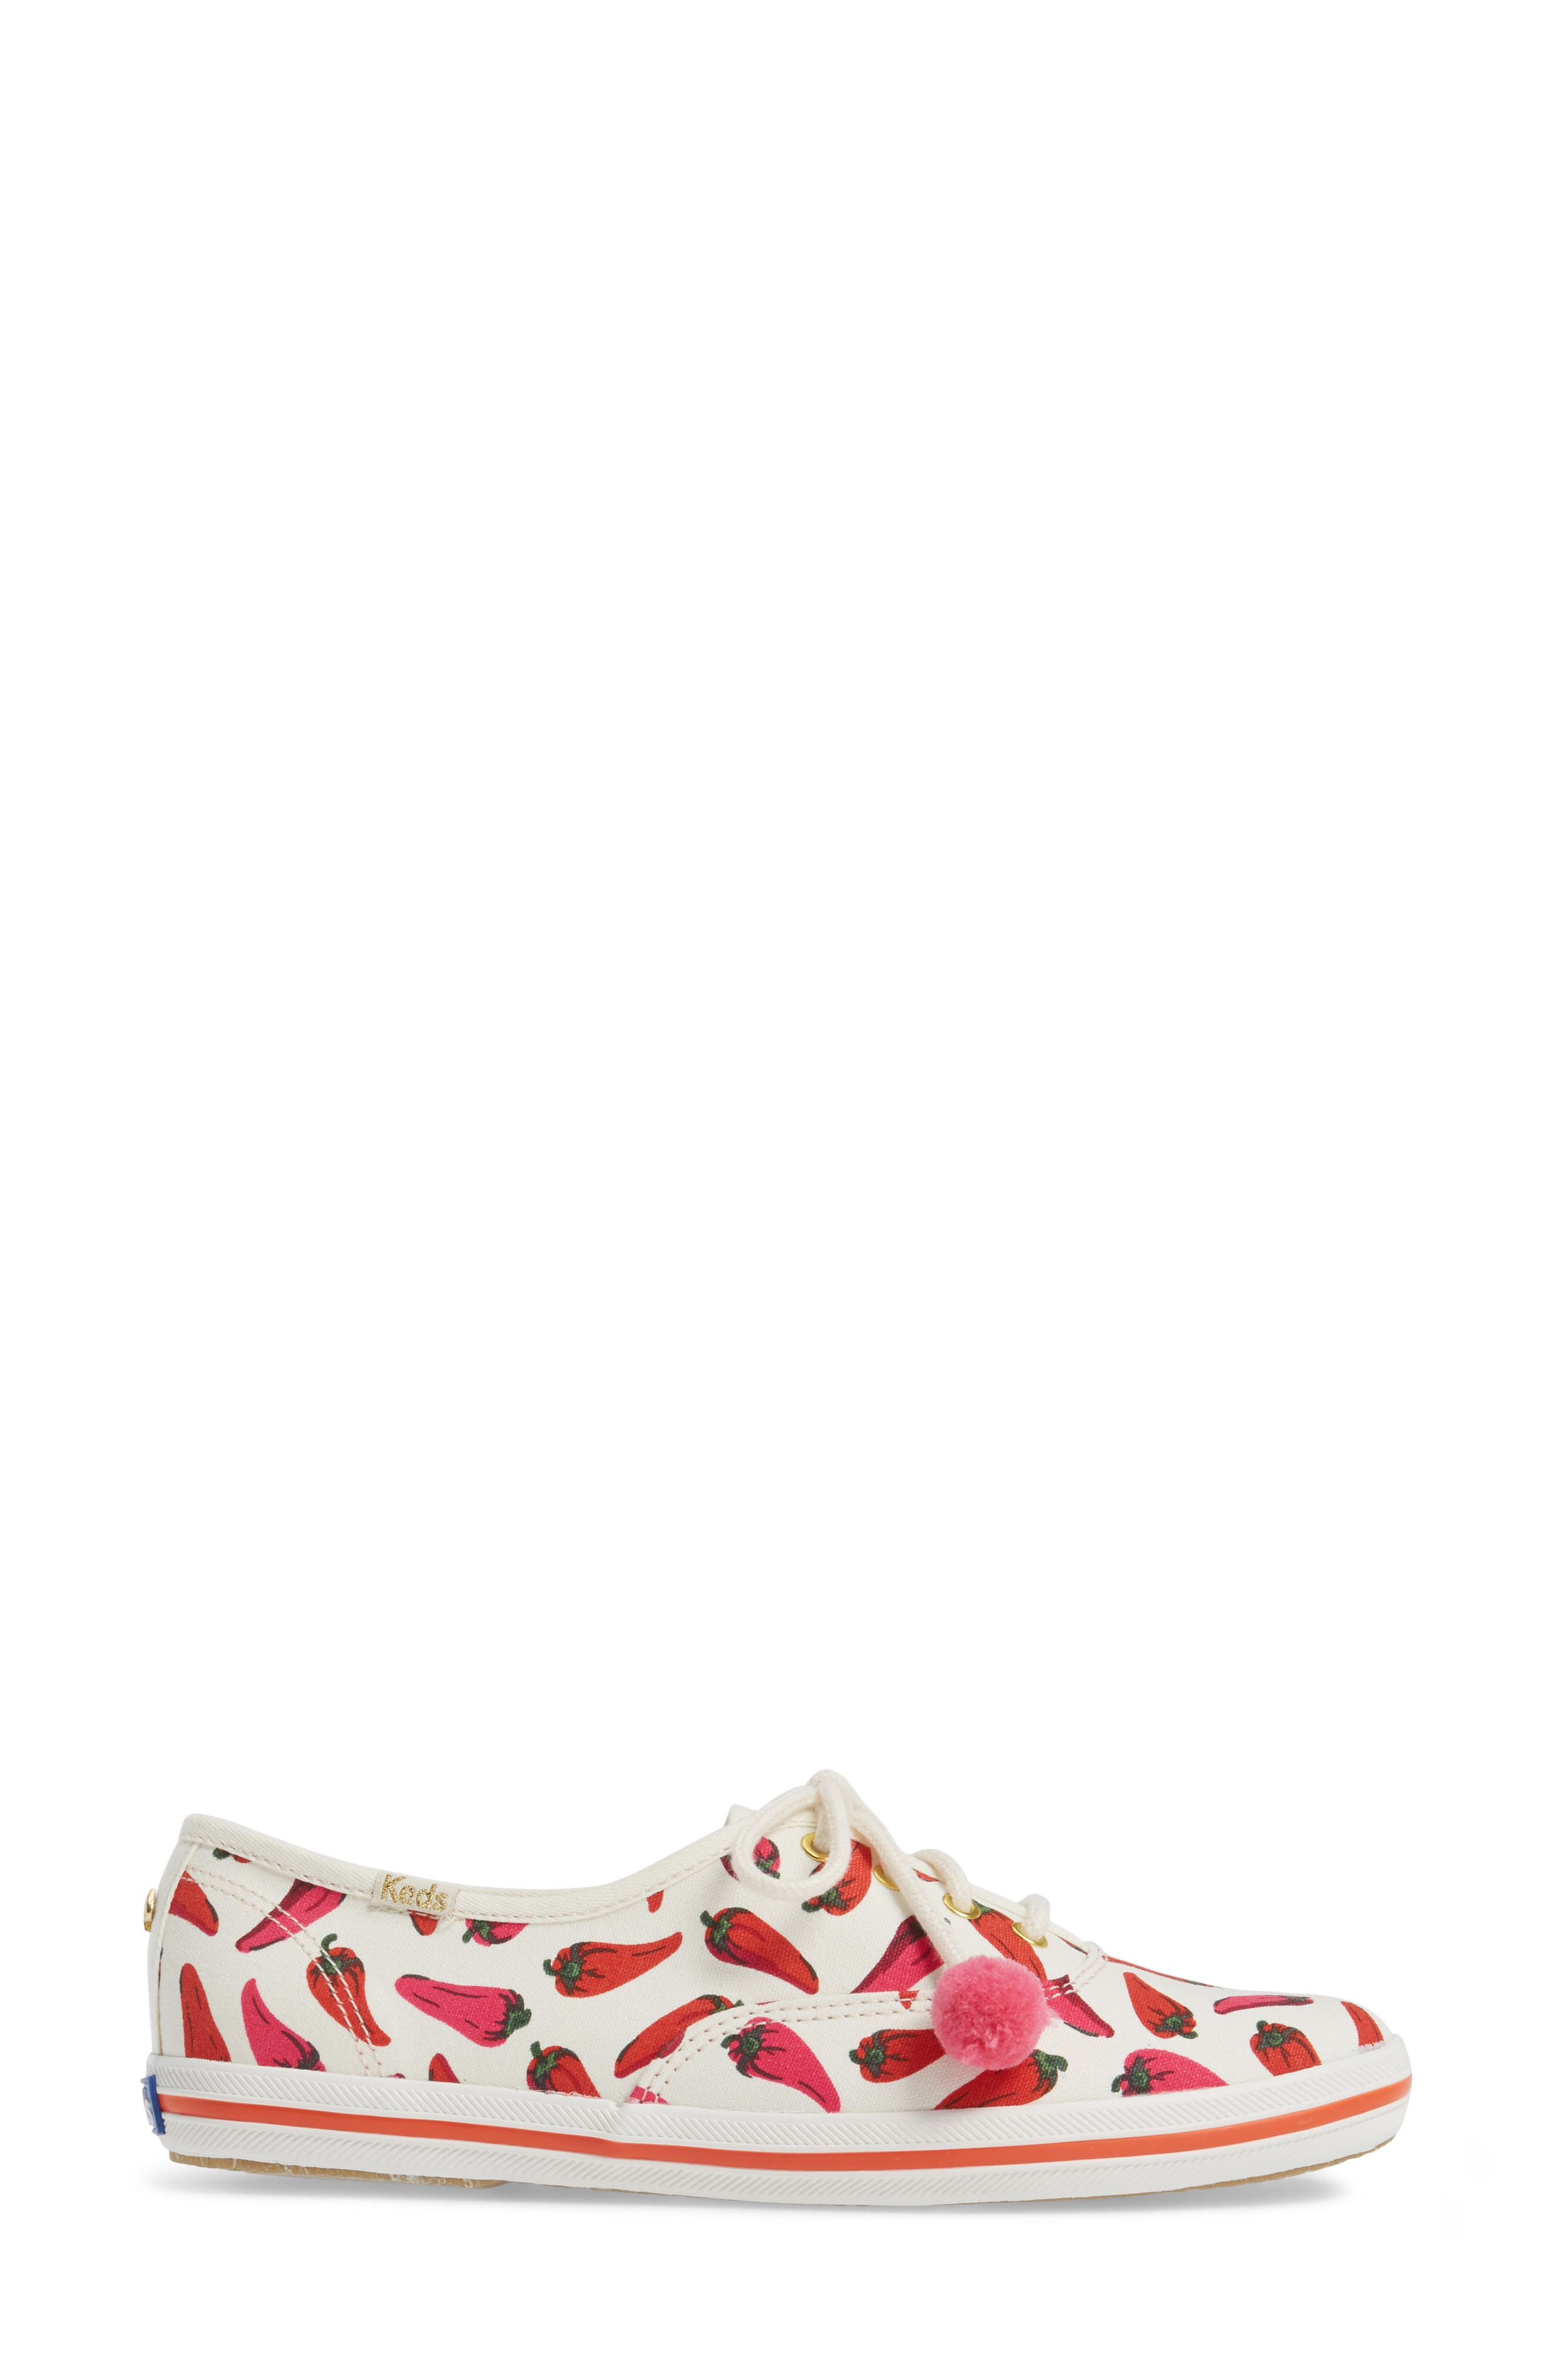 Keds<sup>®</sup> x kate spade new york champion sneaker,                             Alternate thumbnail 12, color,